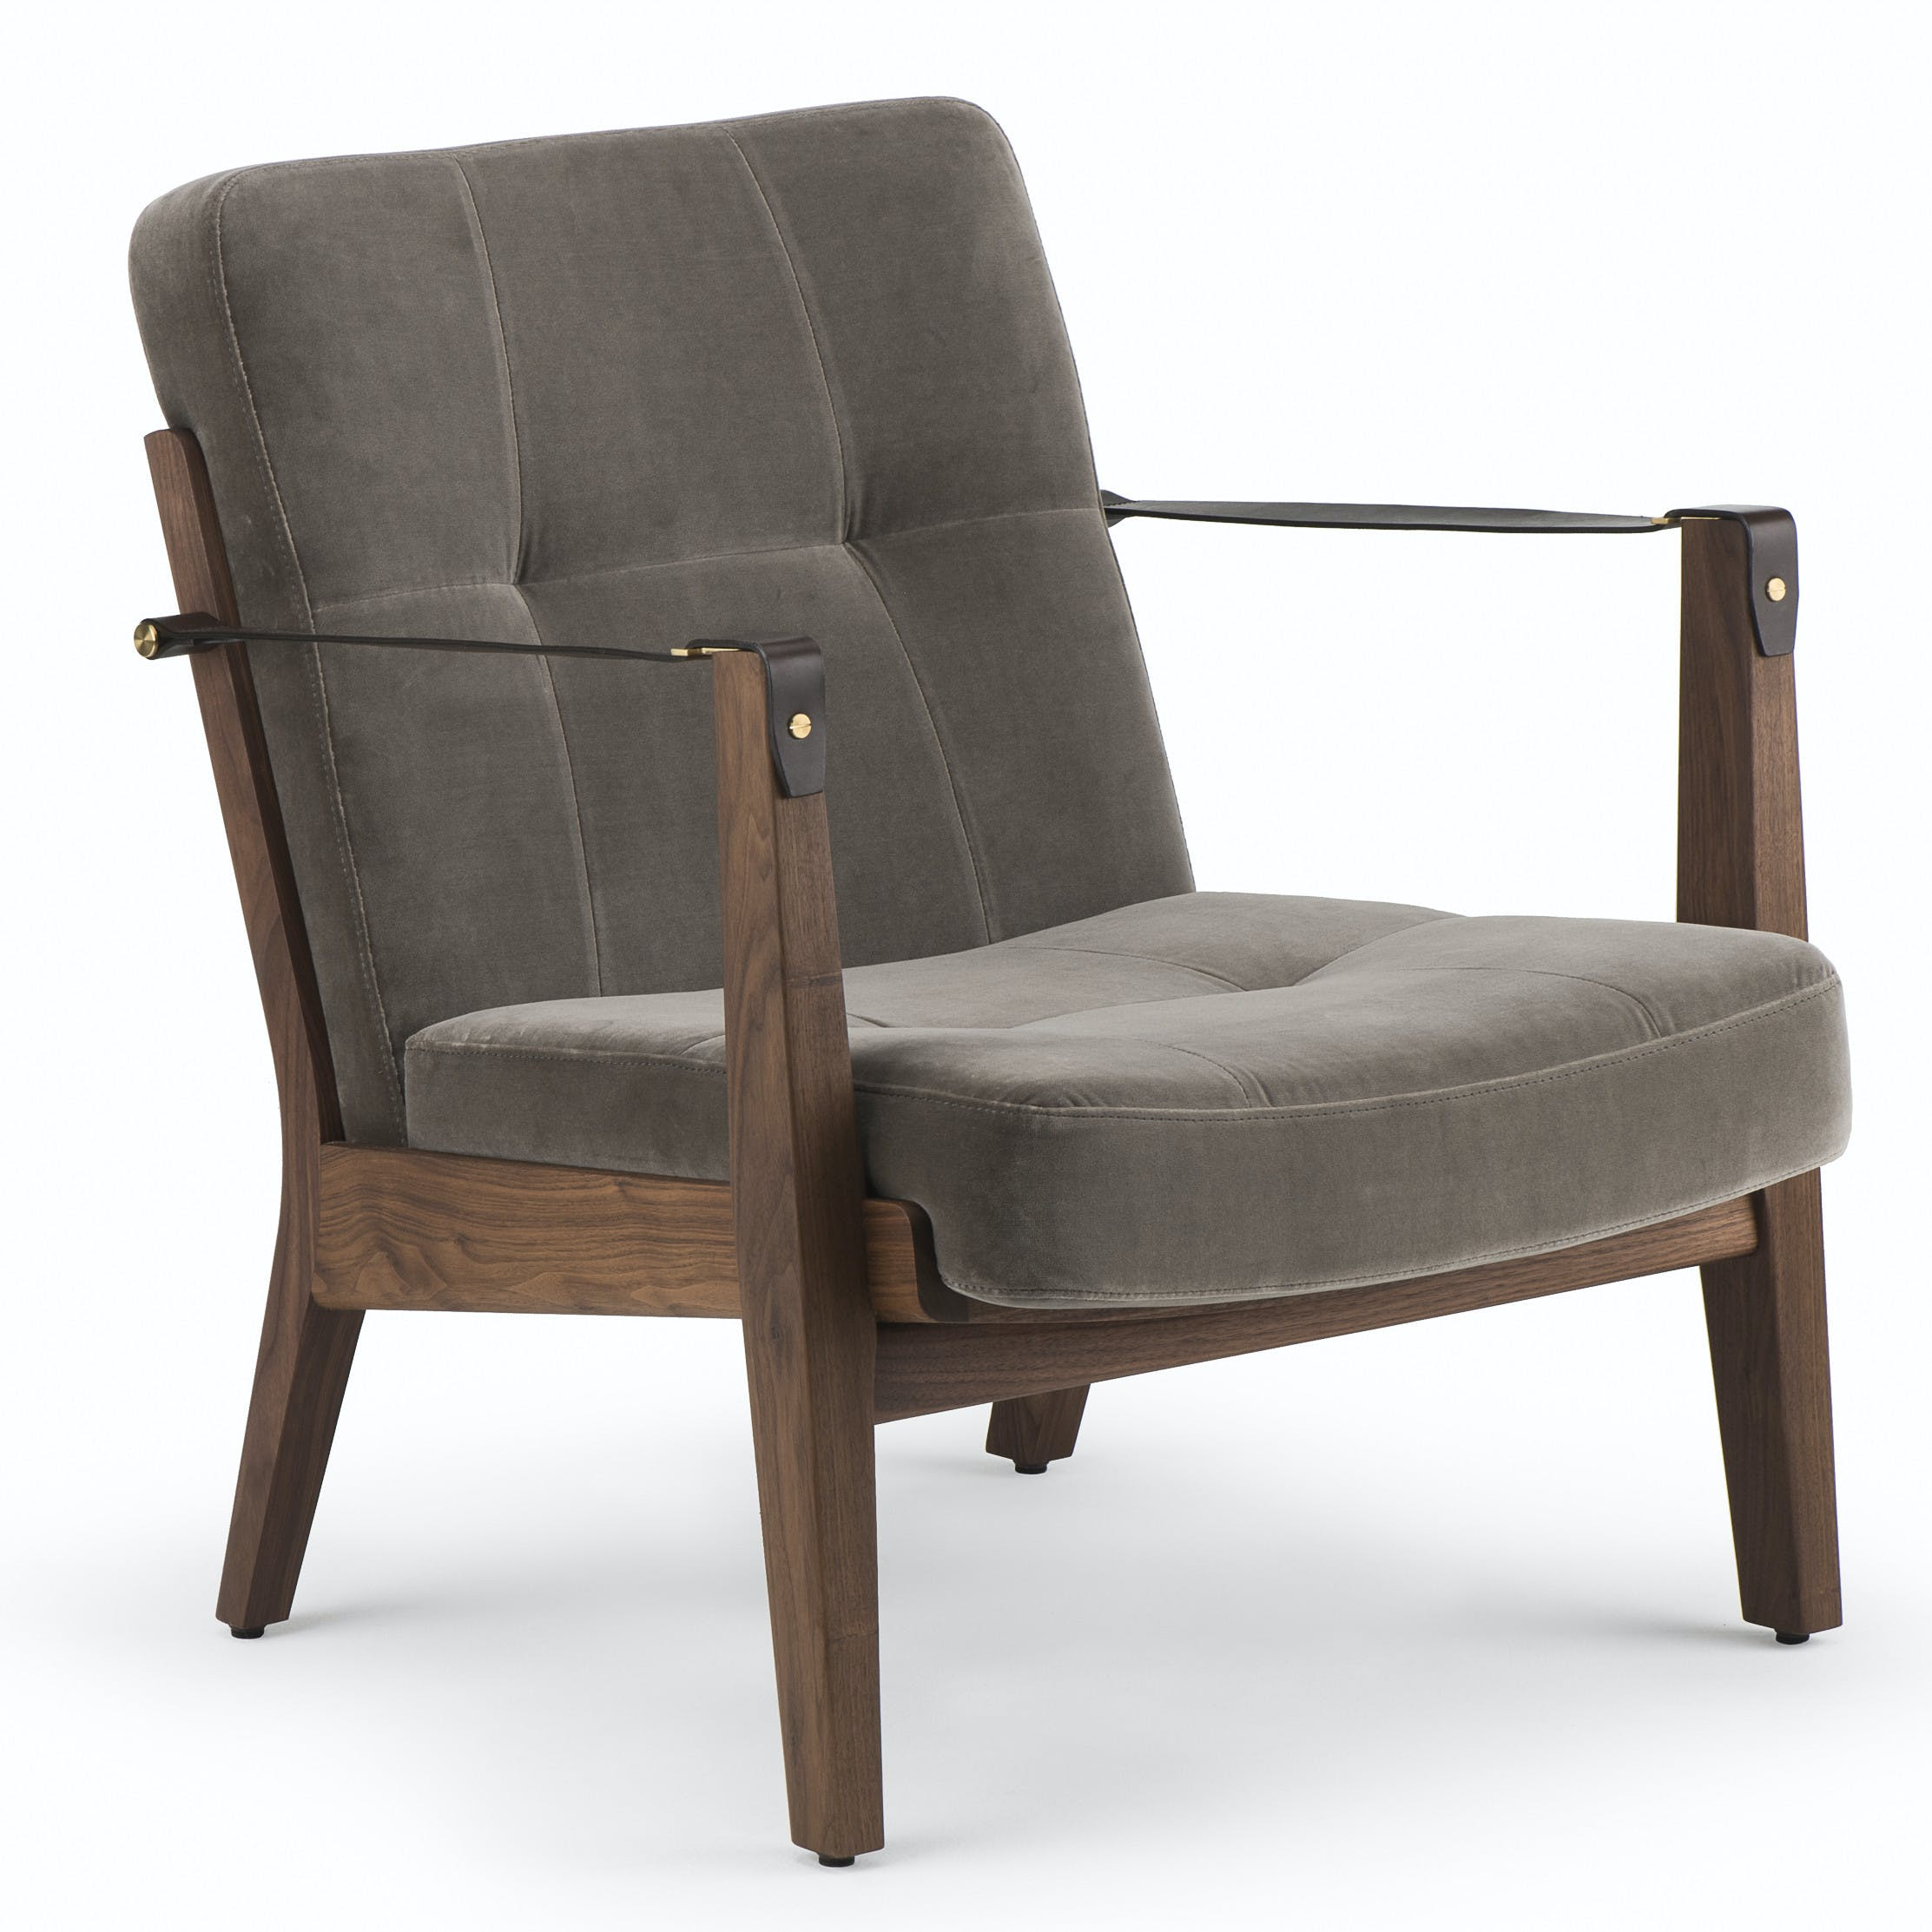 Capo Lounge Chair